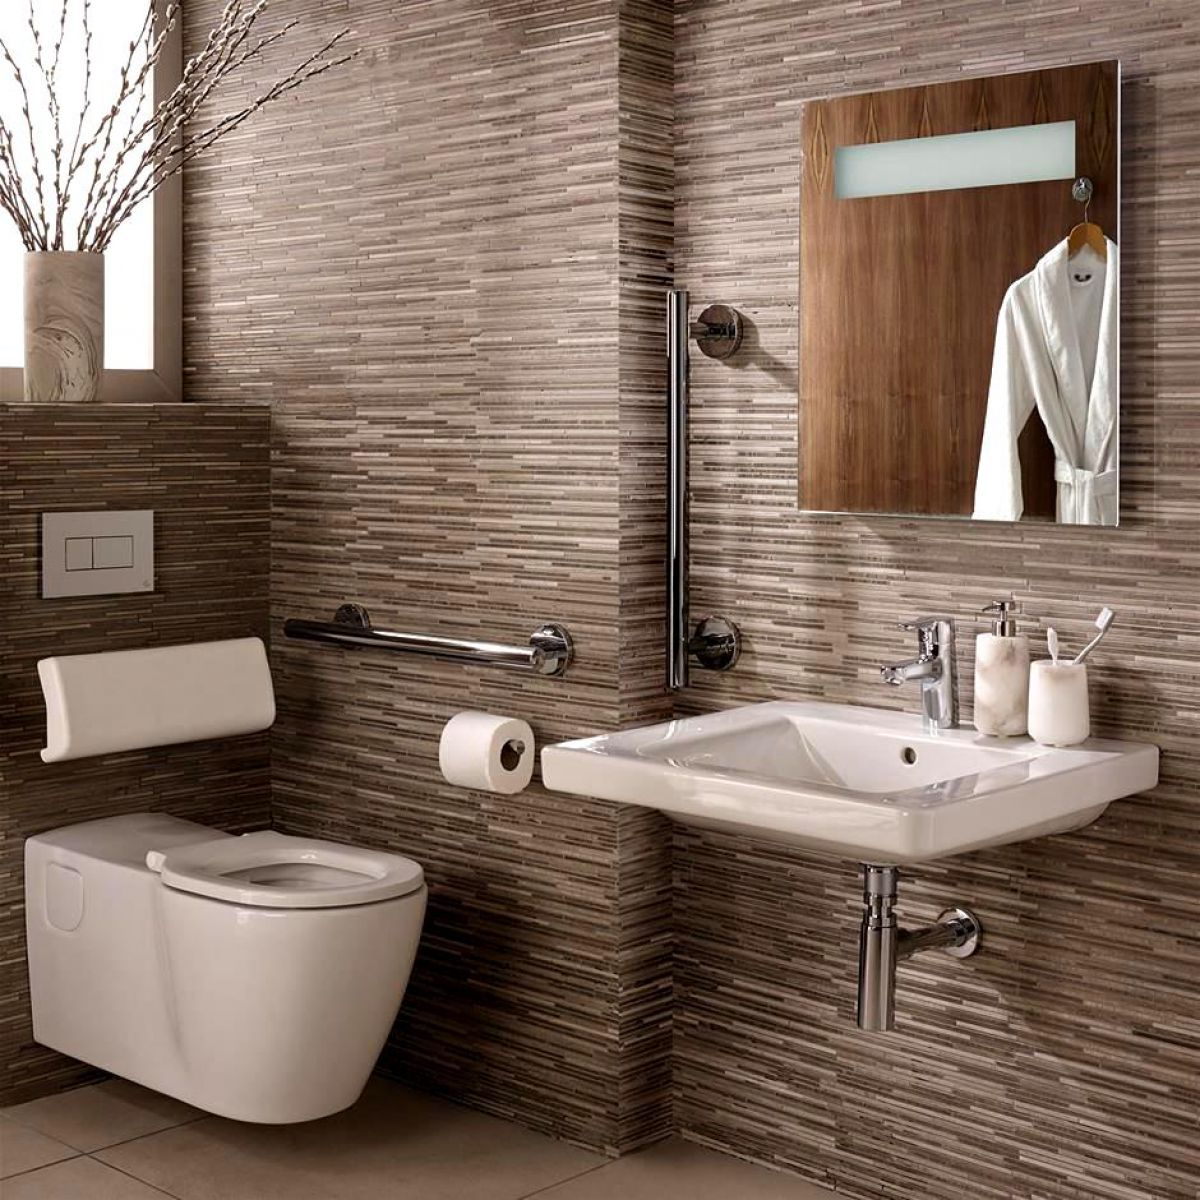 ideal standard concept freedom 60cm accessible washbasin uk bathrooms. Black Bedroom Furniture Sets. Home Design Ideas